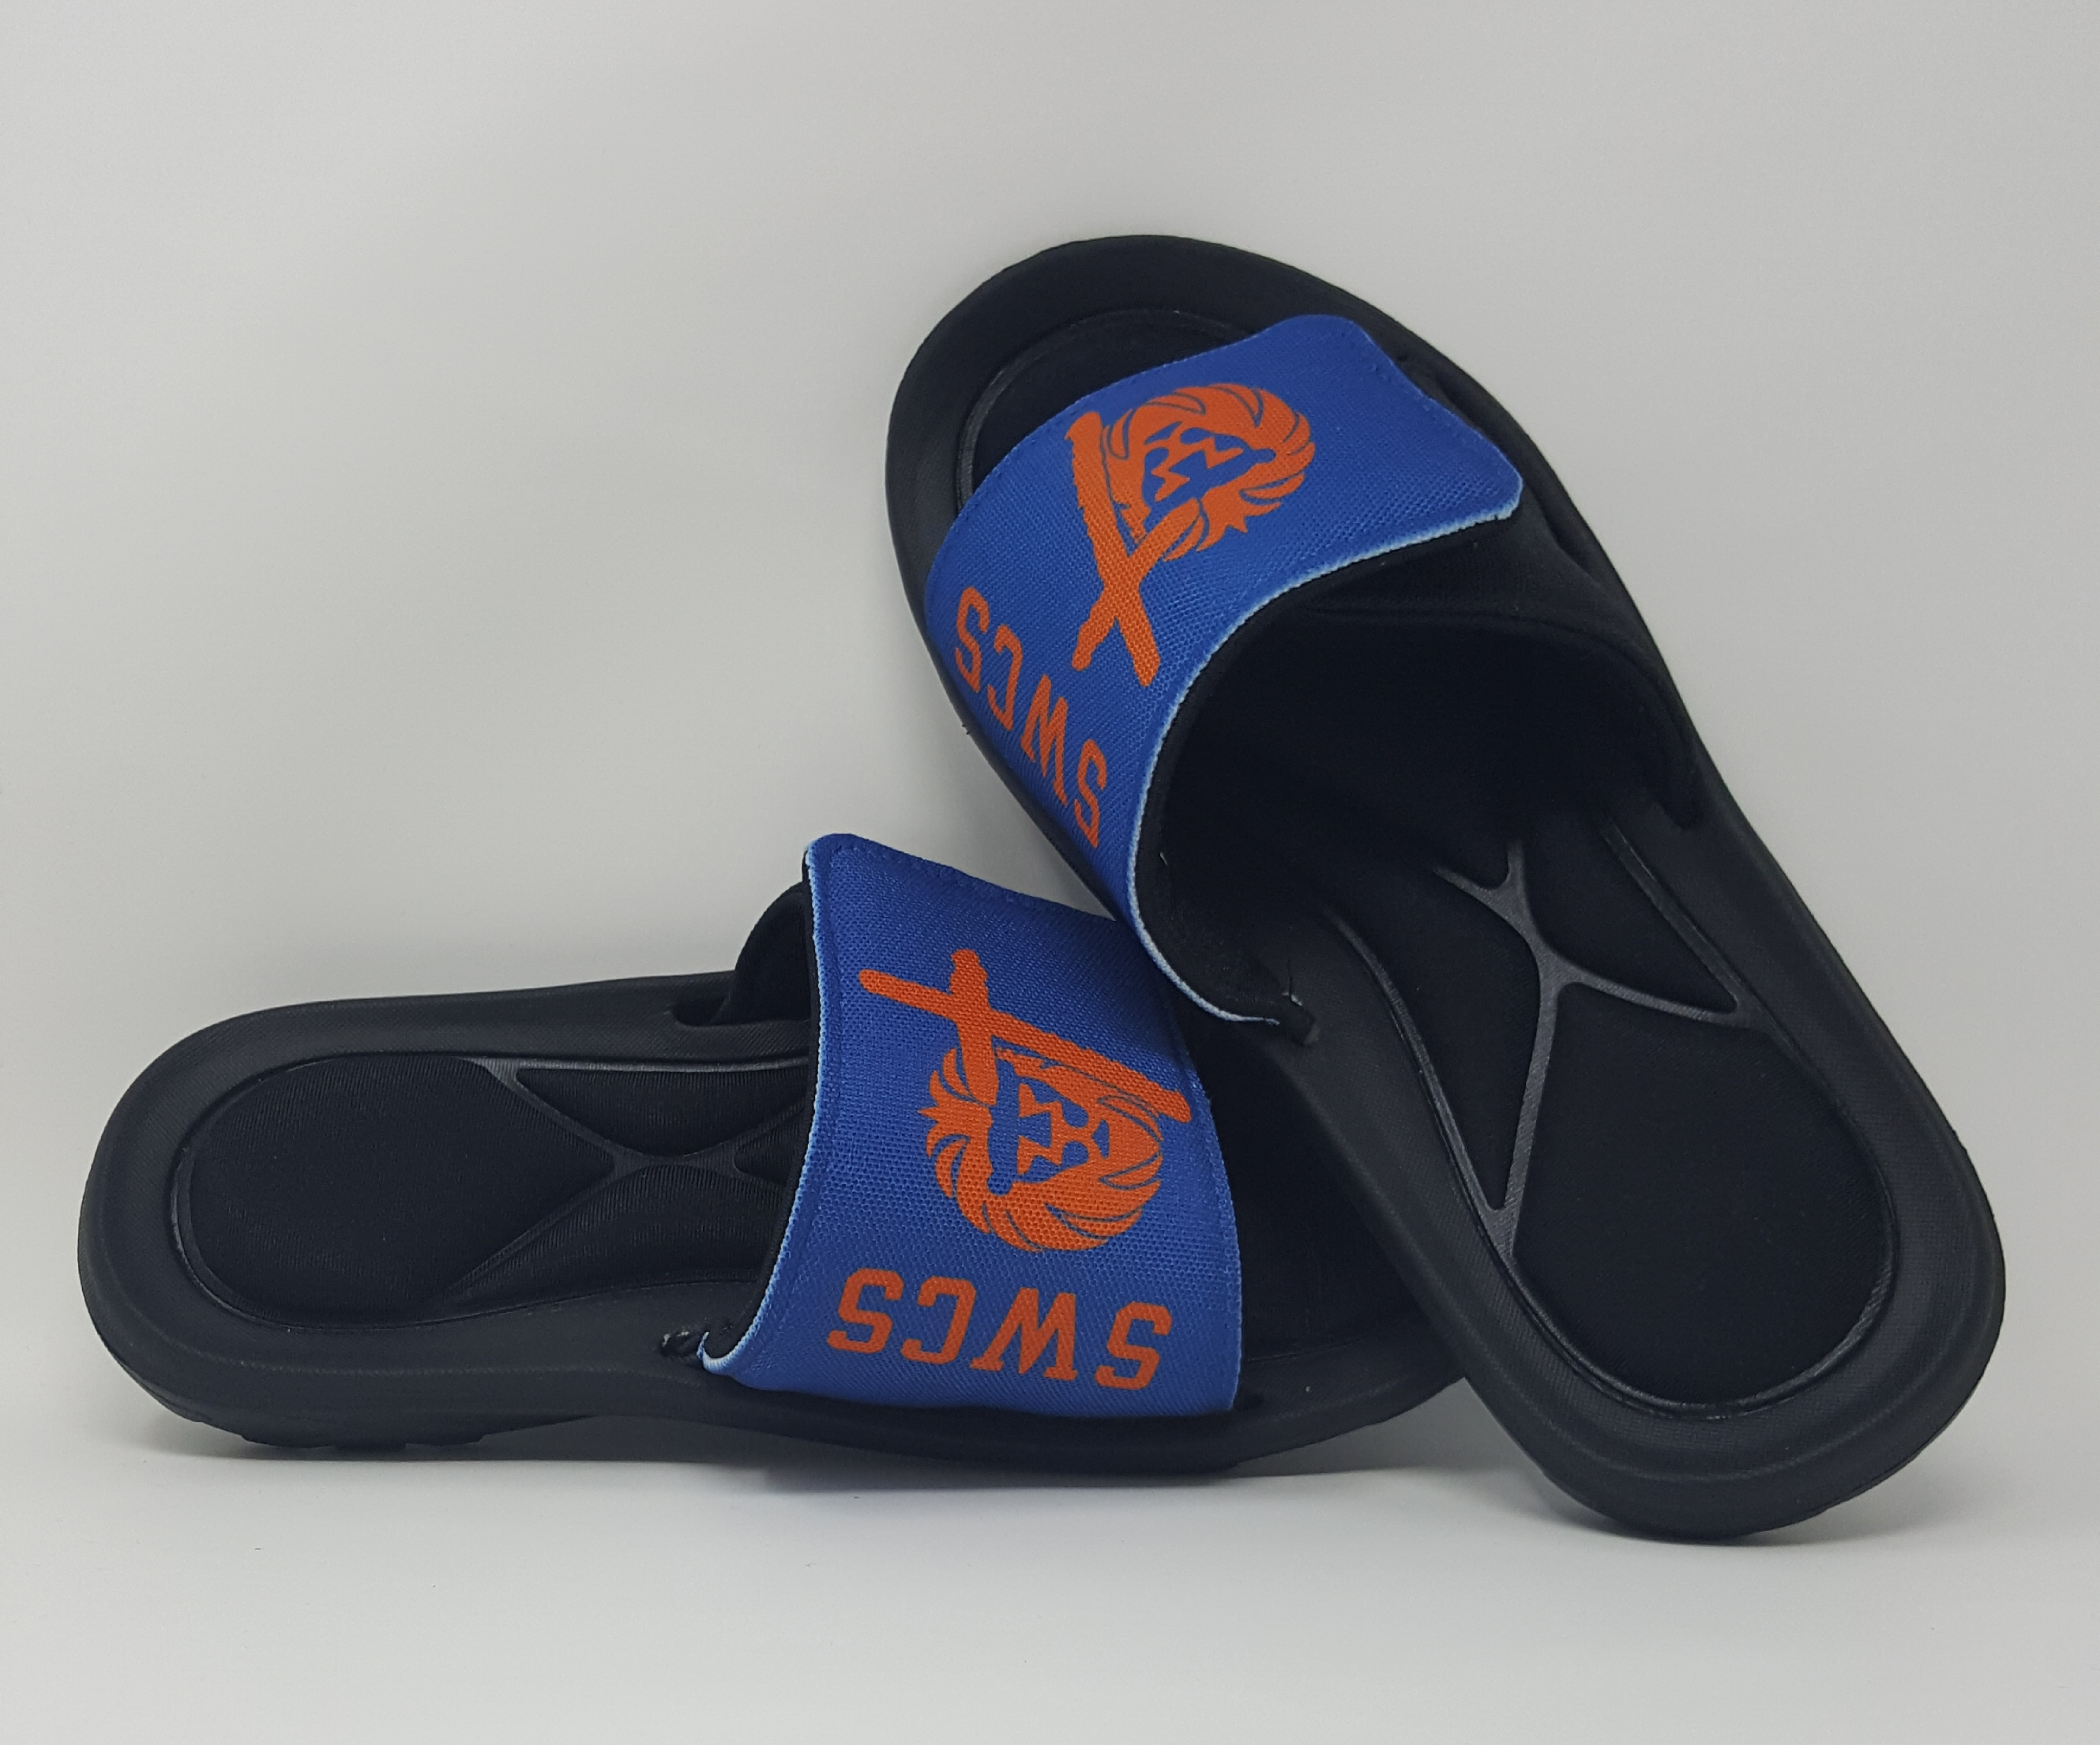 Slide Sandal (Sandal Sizes: SM - Women 7, Kid 6)